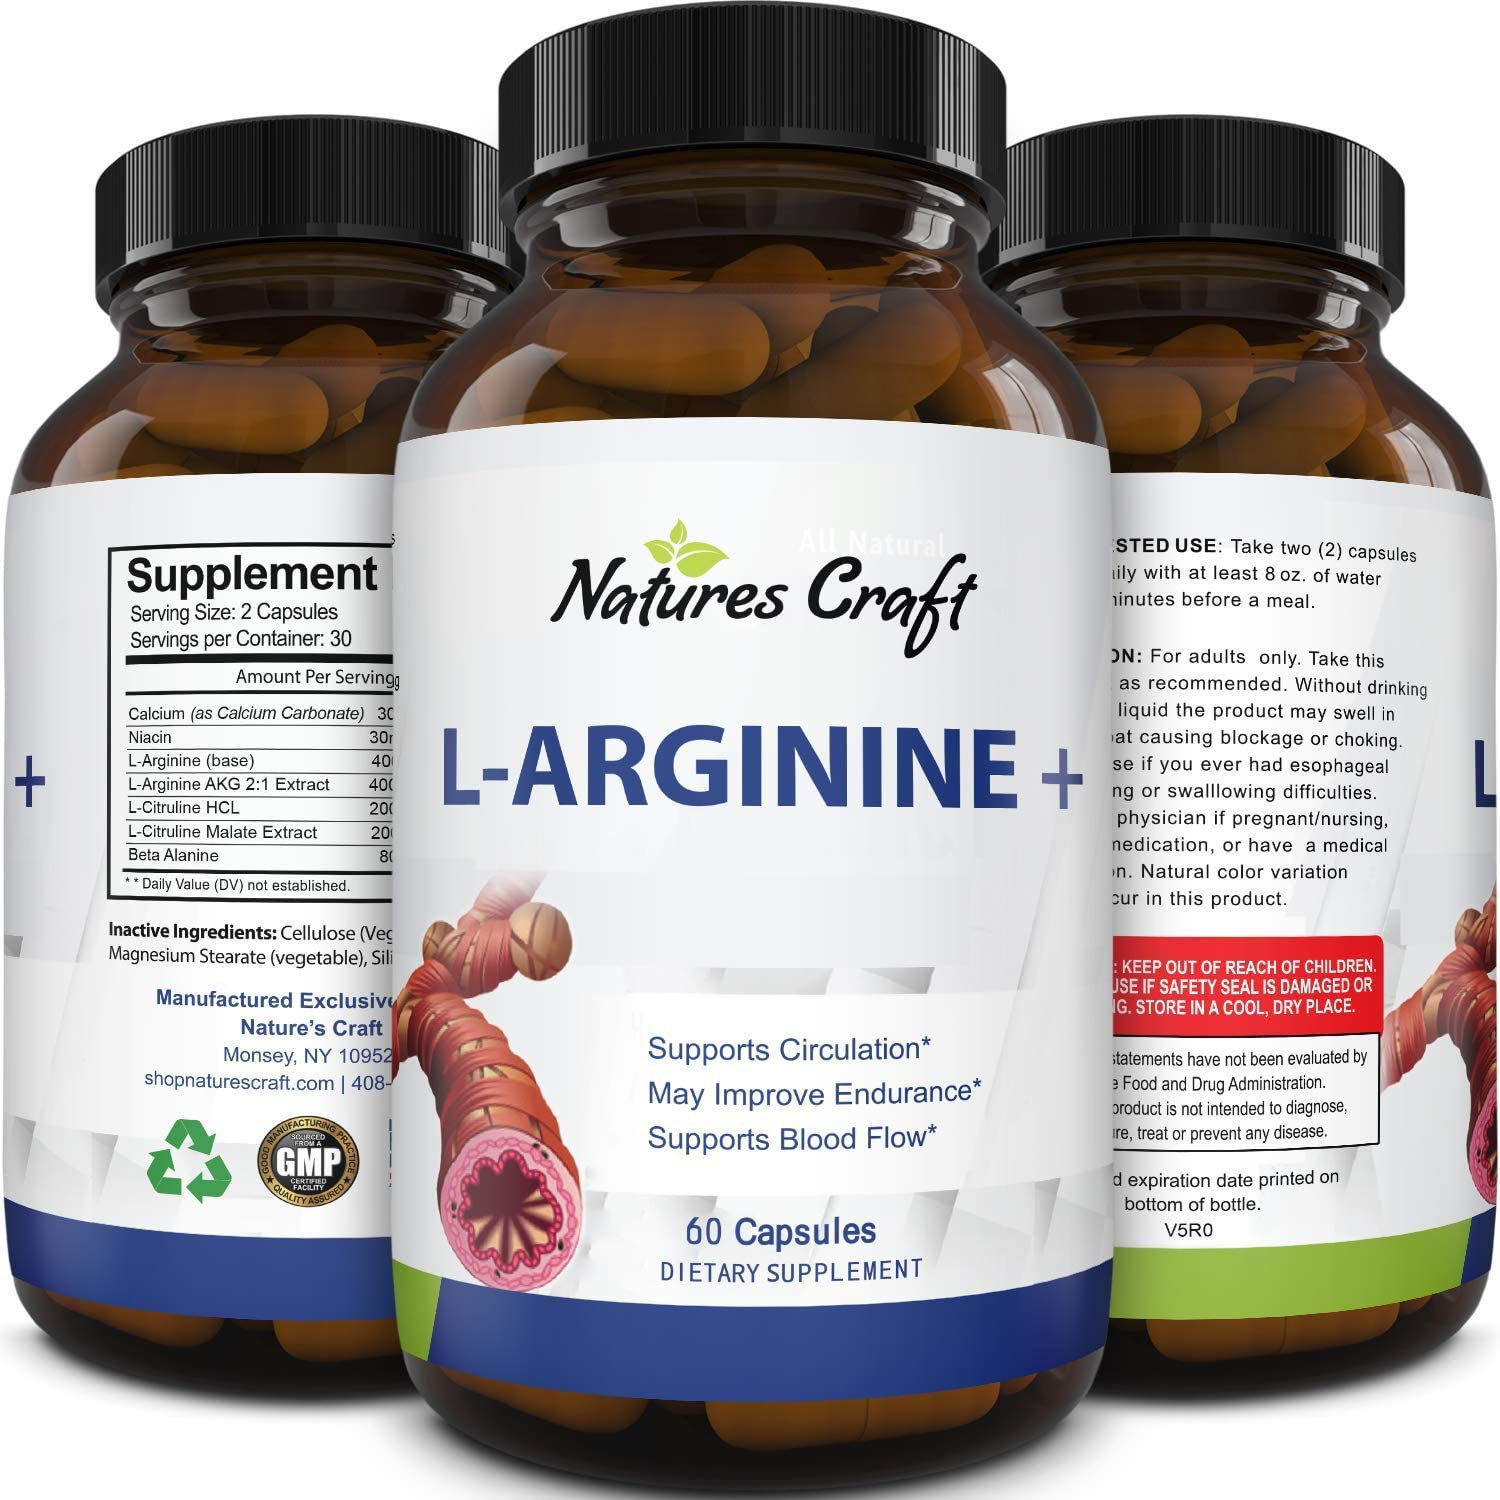 100% Pure L-arginine and L Citruline a Premium Amino Acids Strength for Pre Work Out and Energy Enhancement for Men to Support Nitric Oxide 1000 mg Per Capsules a Natural Supplement Booster